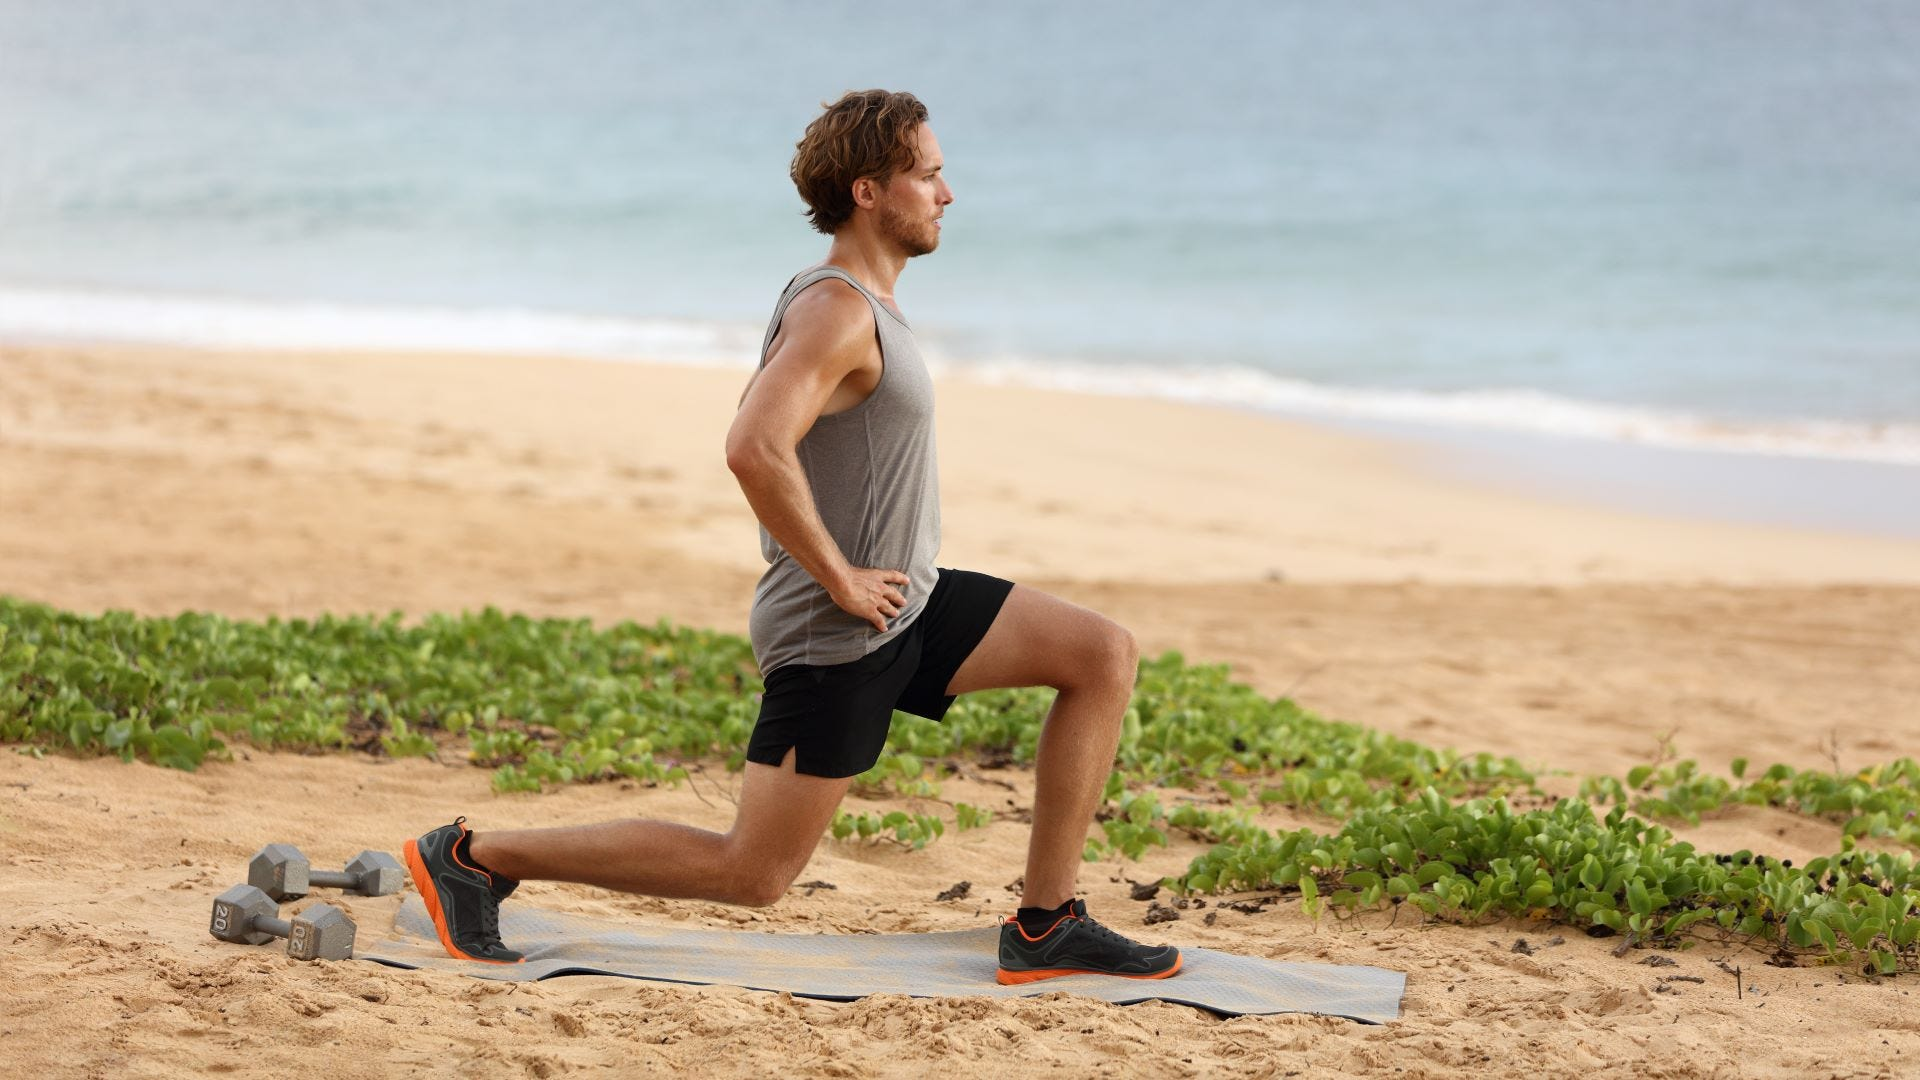 A man doing lunges on a beach.